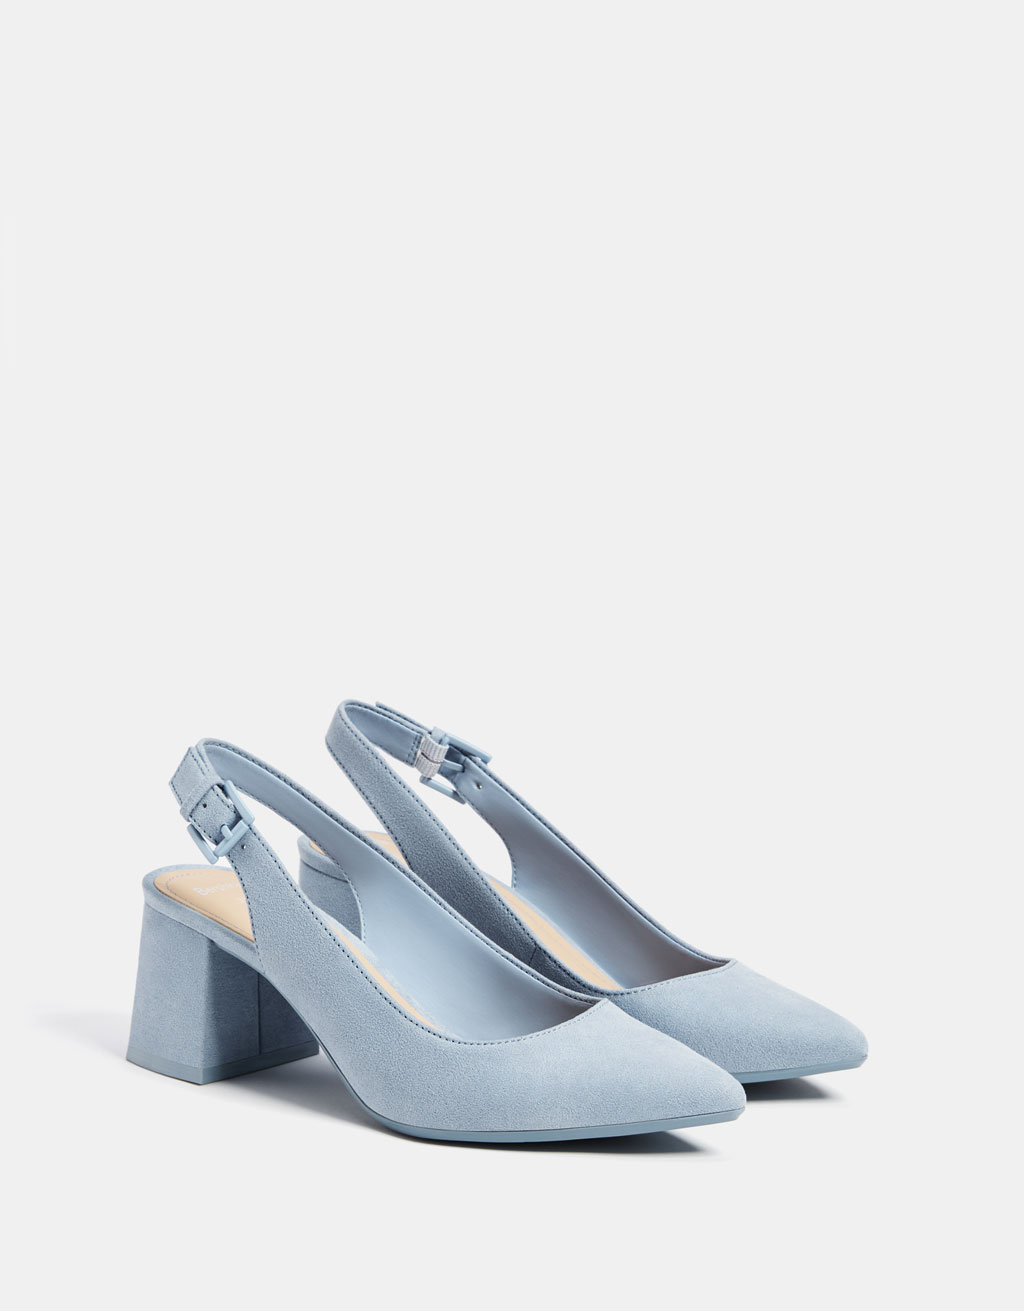 Blue slingback mid-heel shoes